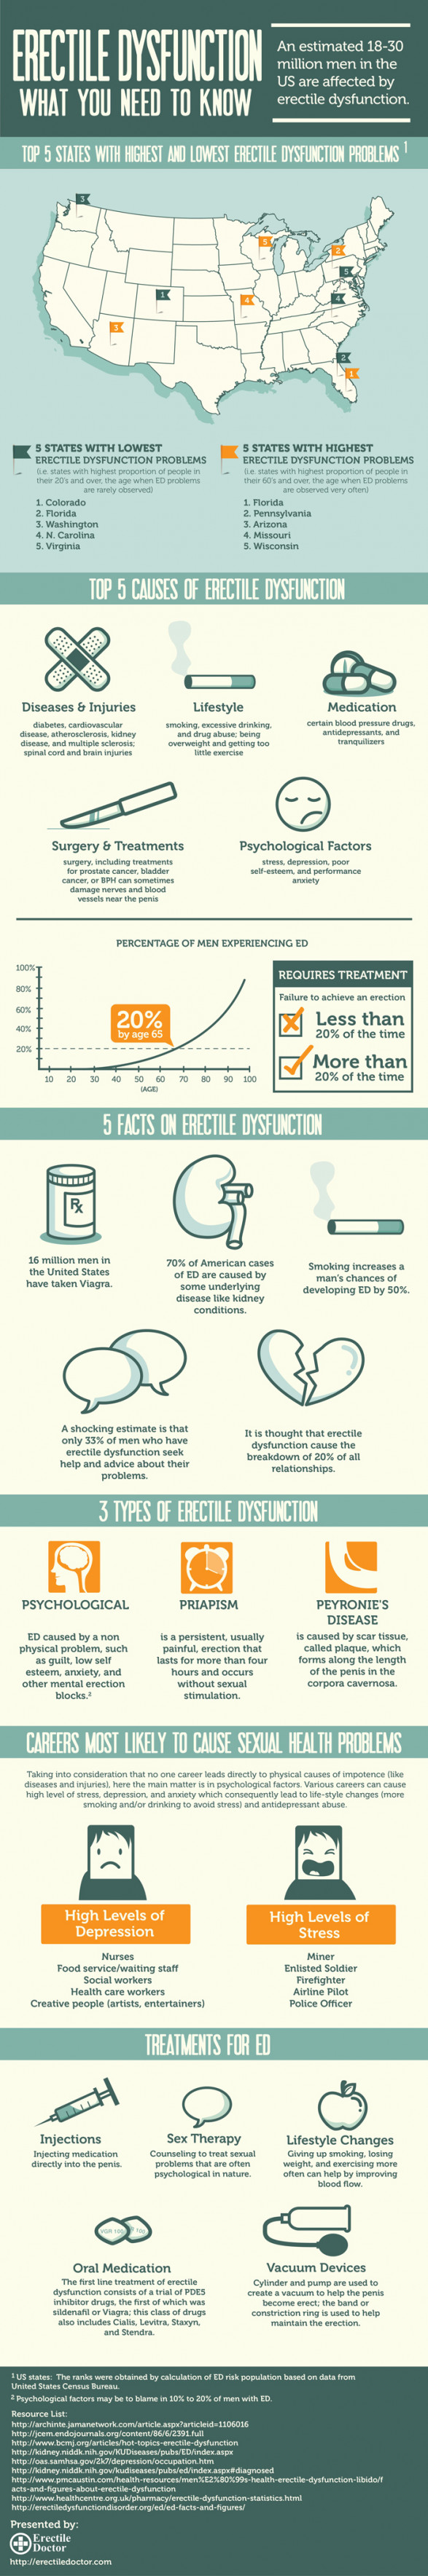 Erectile Dysfunction: What You Need To Know